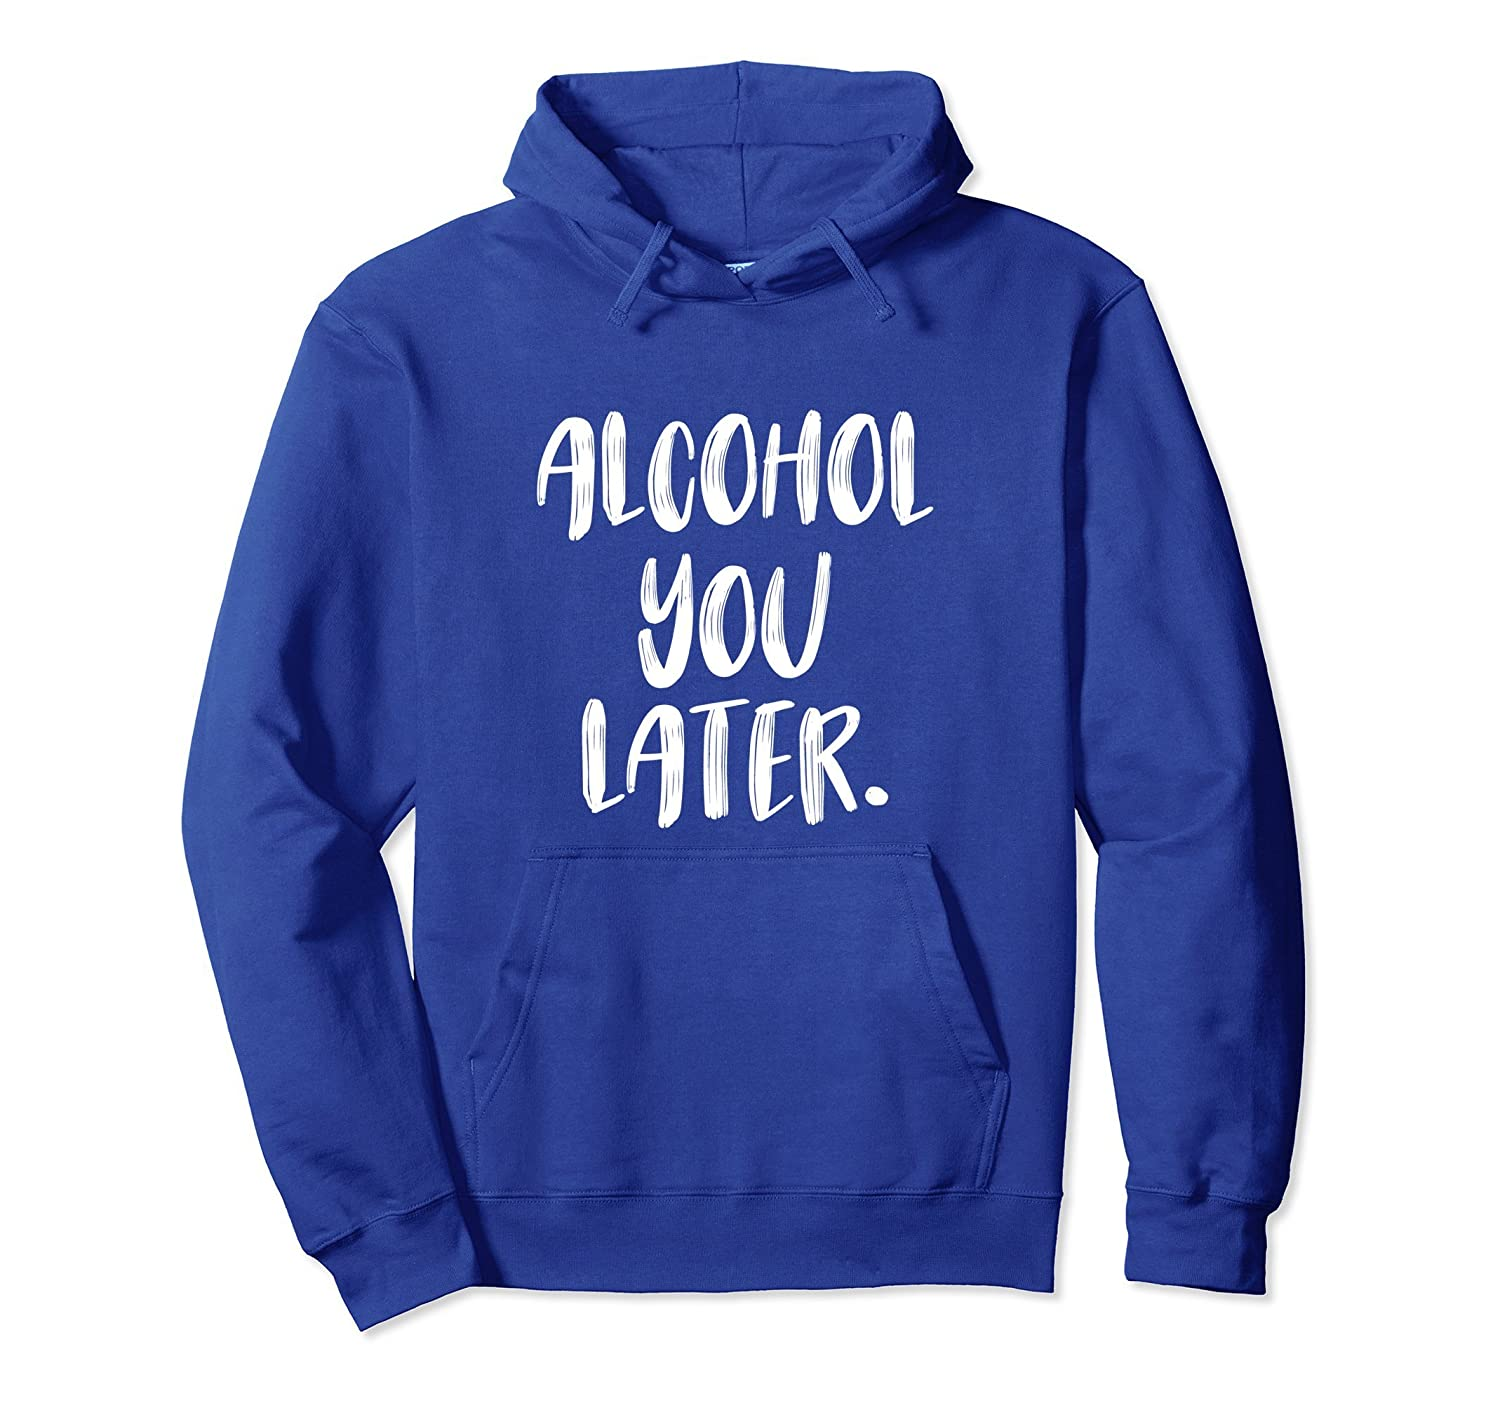 Alcohol You Later Sweatshirt - Funny Drinking Shirt-mt